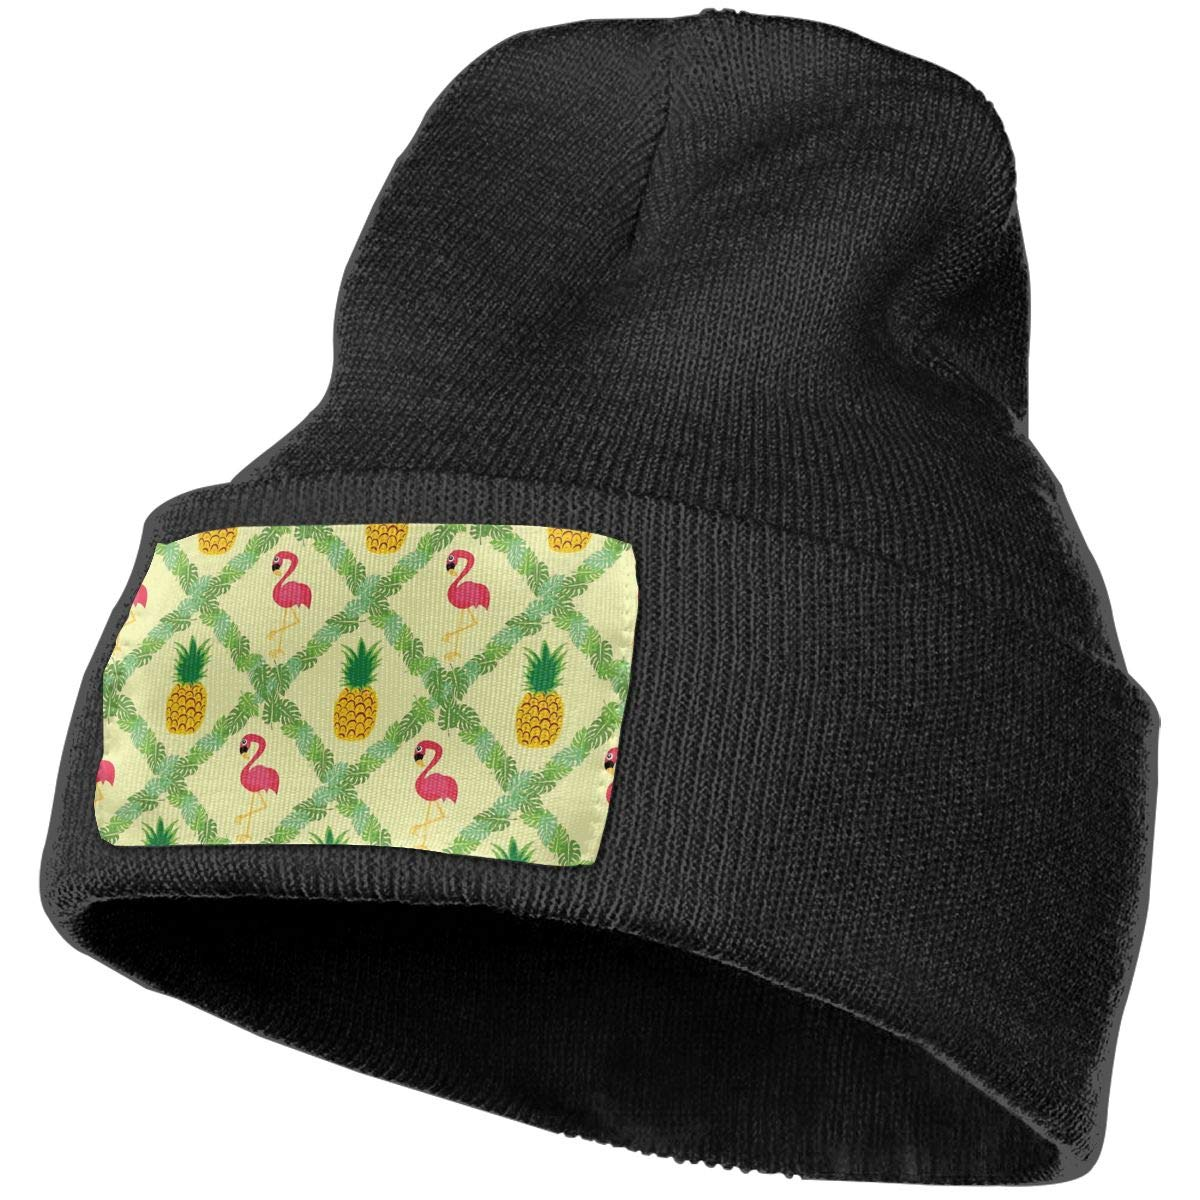 Flamingo Pineapple Hat for Men and Women Winter Warm Hats Knit Slouchy Thick Skull Cap Black